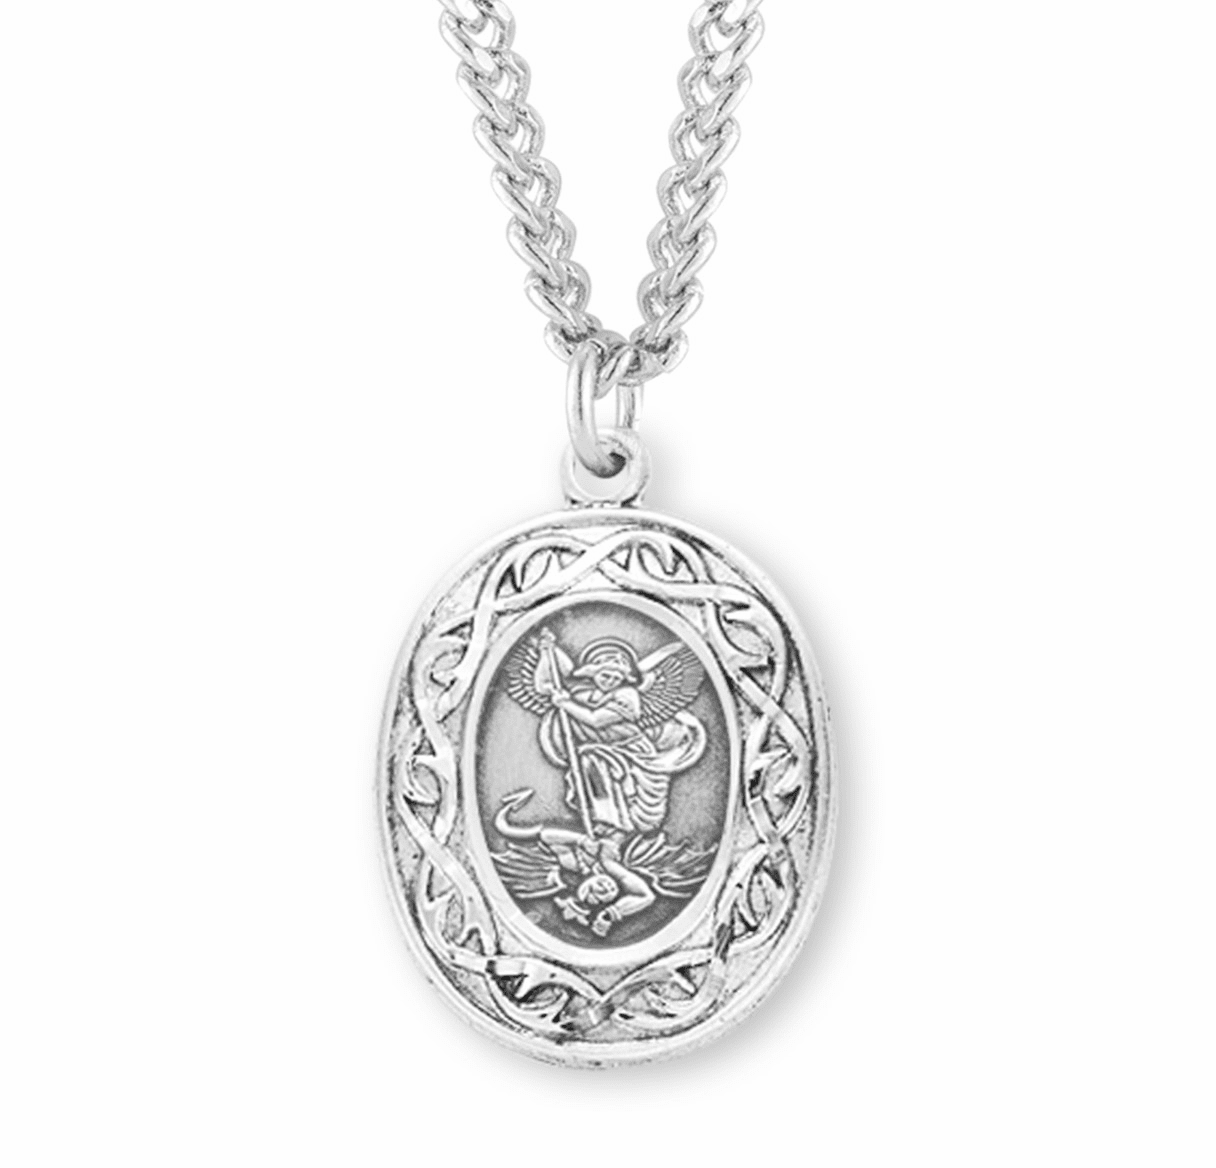 St Michael Crown of Thorns Medal Necklace by HMH Religious